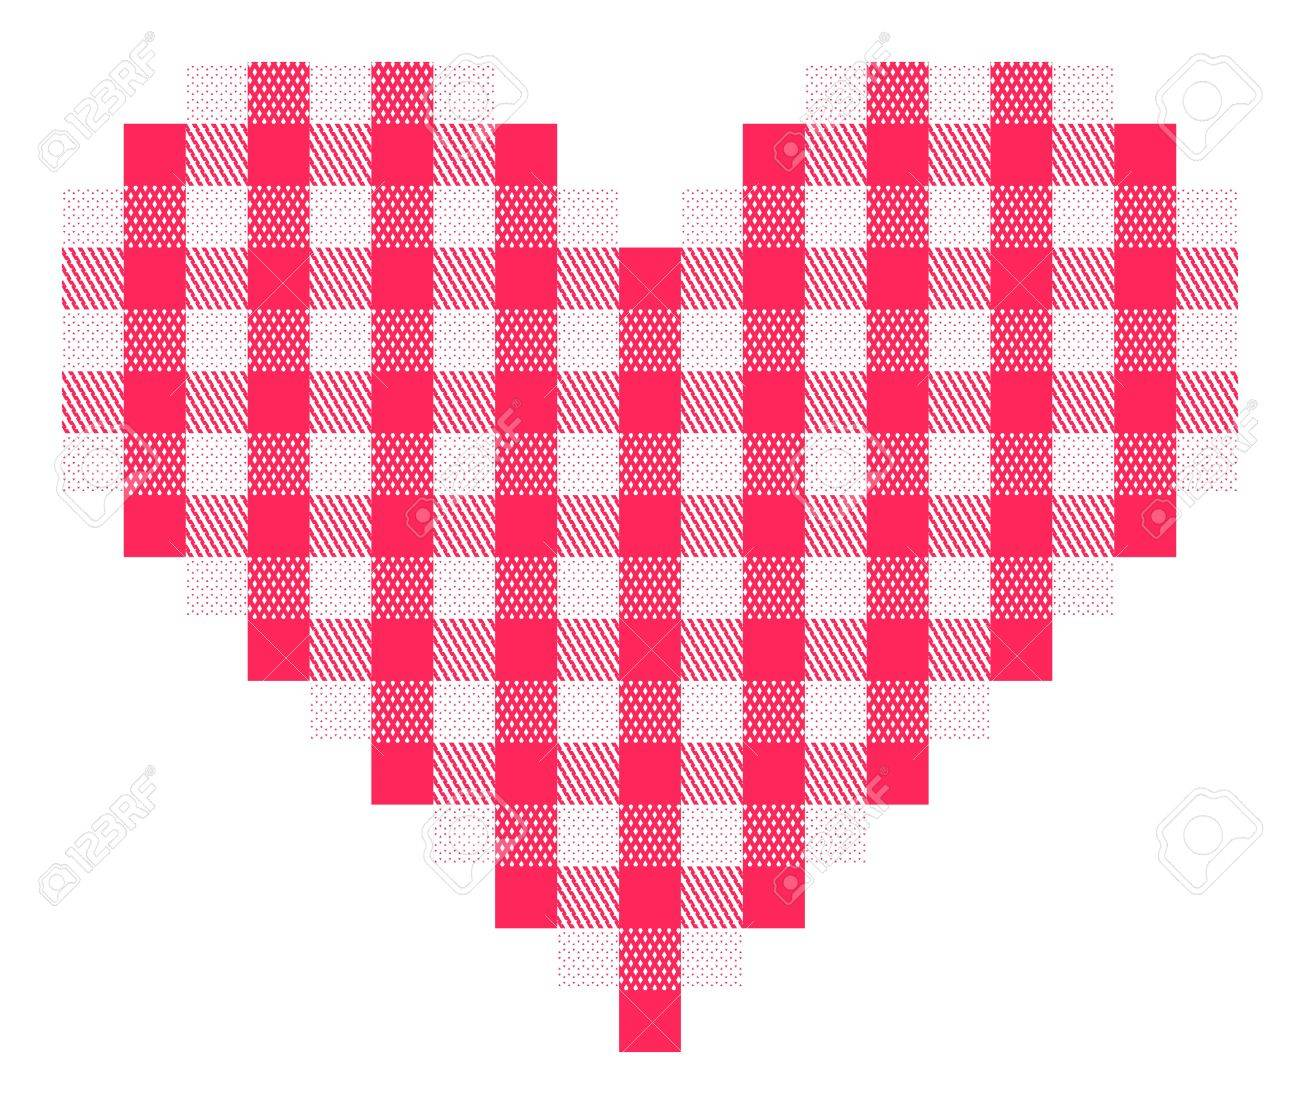 Checkered heart with traditional pattern in pinkish red and white. Stock Photo - 8030768